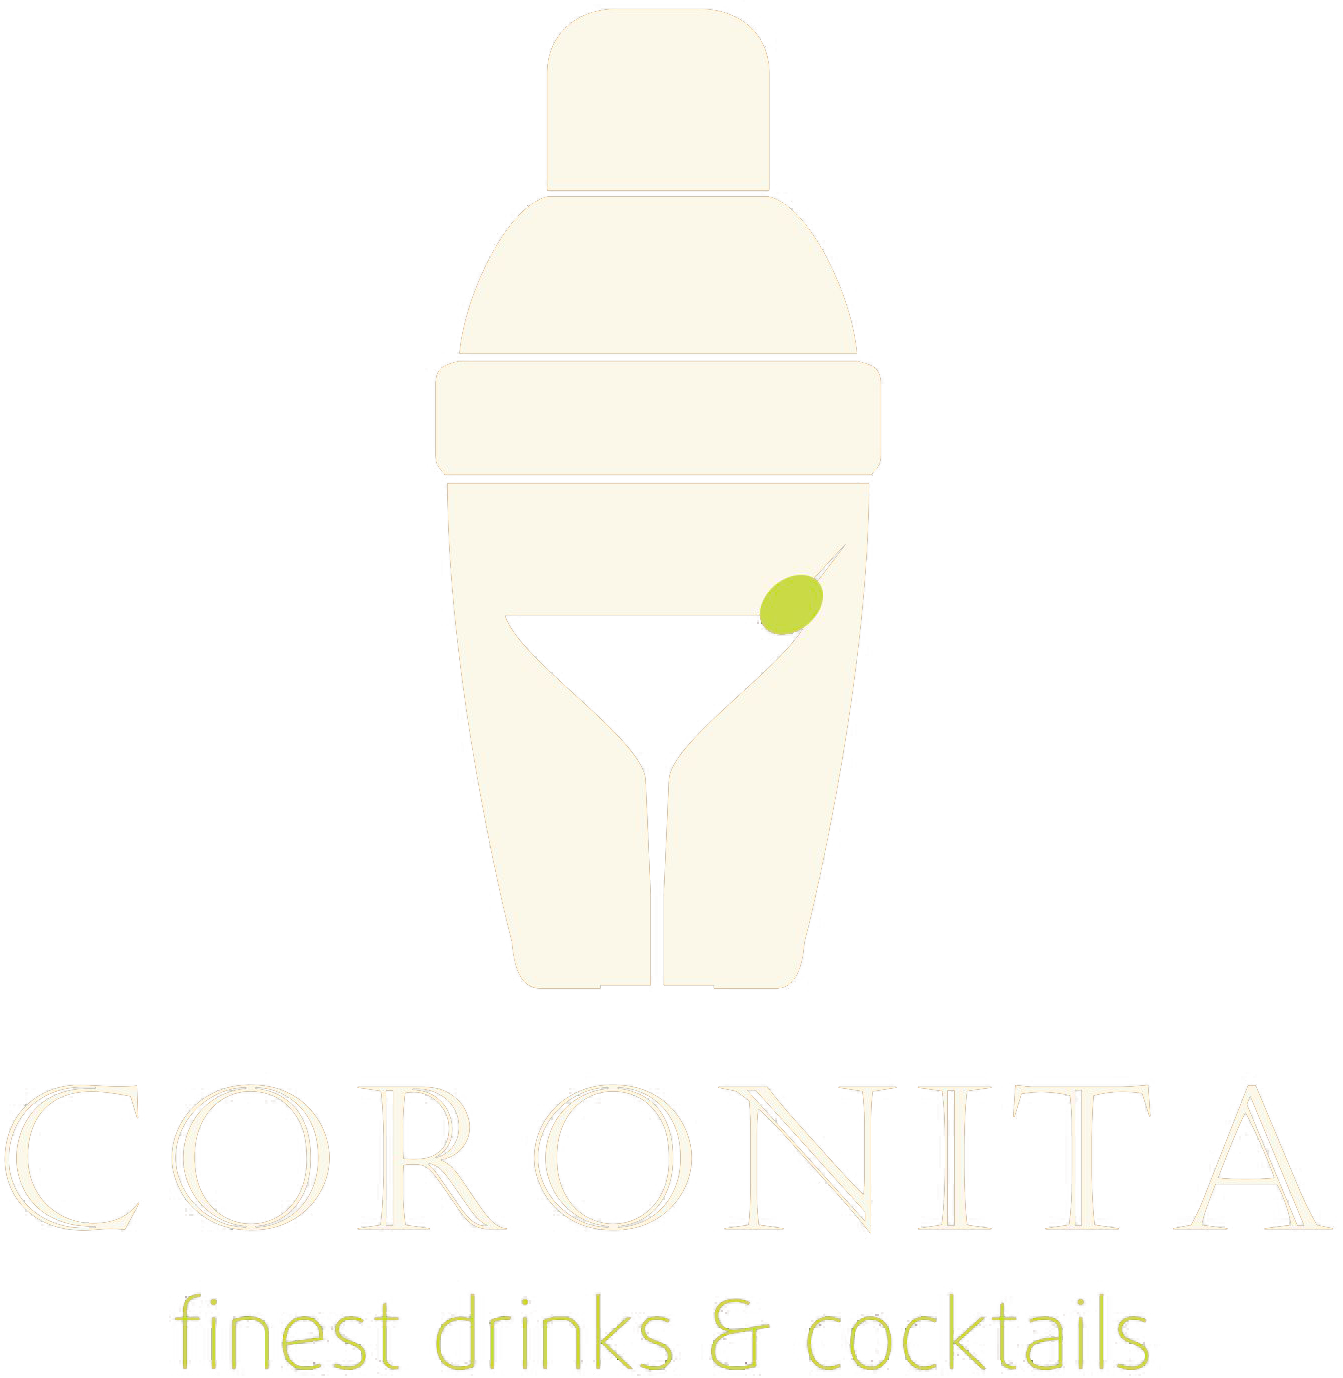 Coronita - finest drinks & cocktails